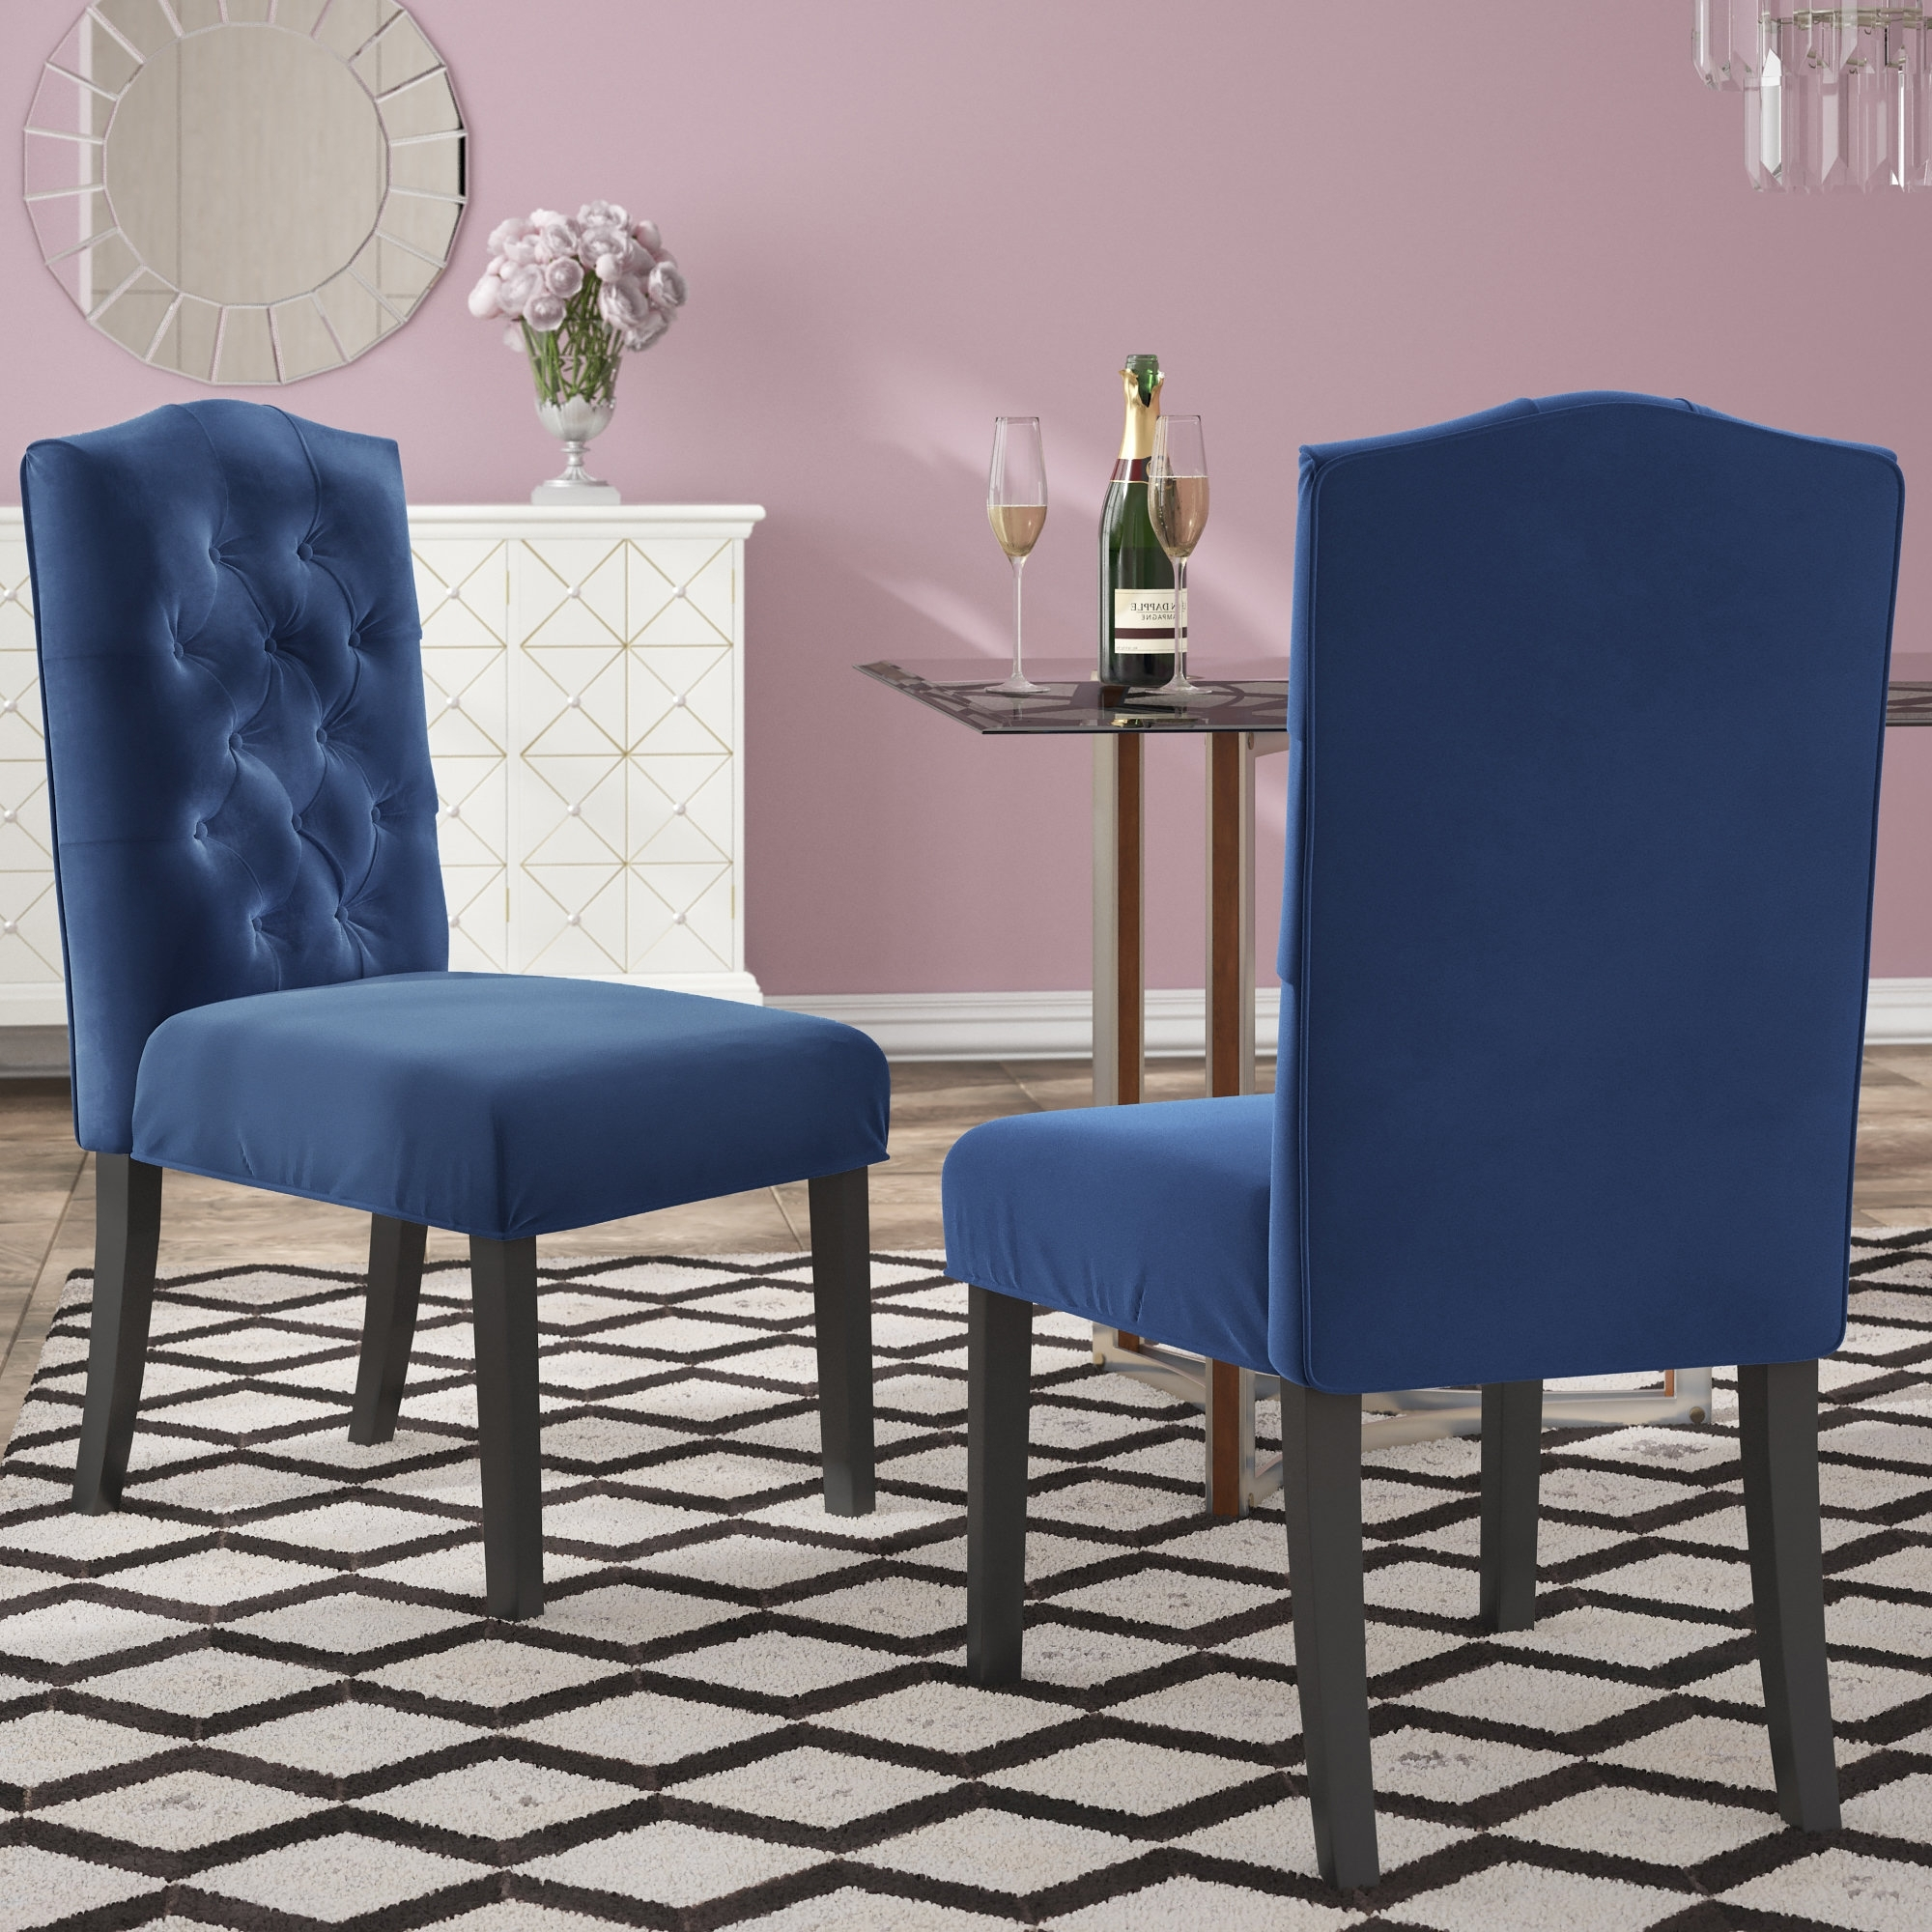 House Of Hampton Menard Traditional Upholstered Dining Chair Intended For Most Current Caden 7 Piece Dining Sets With Upholstered Side Chair (View 9 of 25)